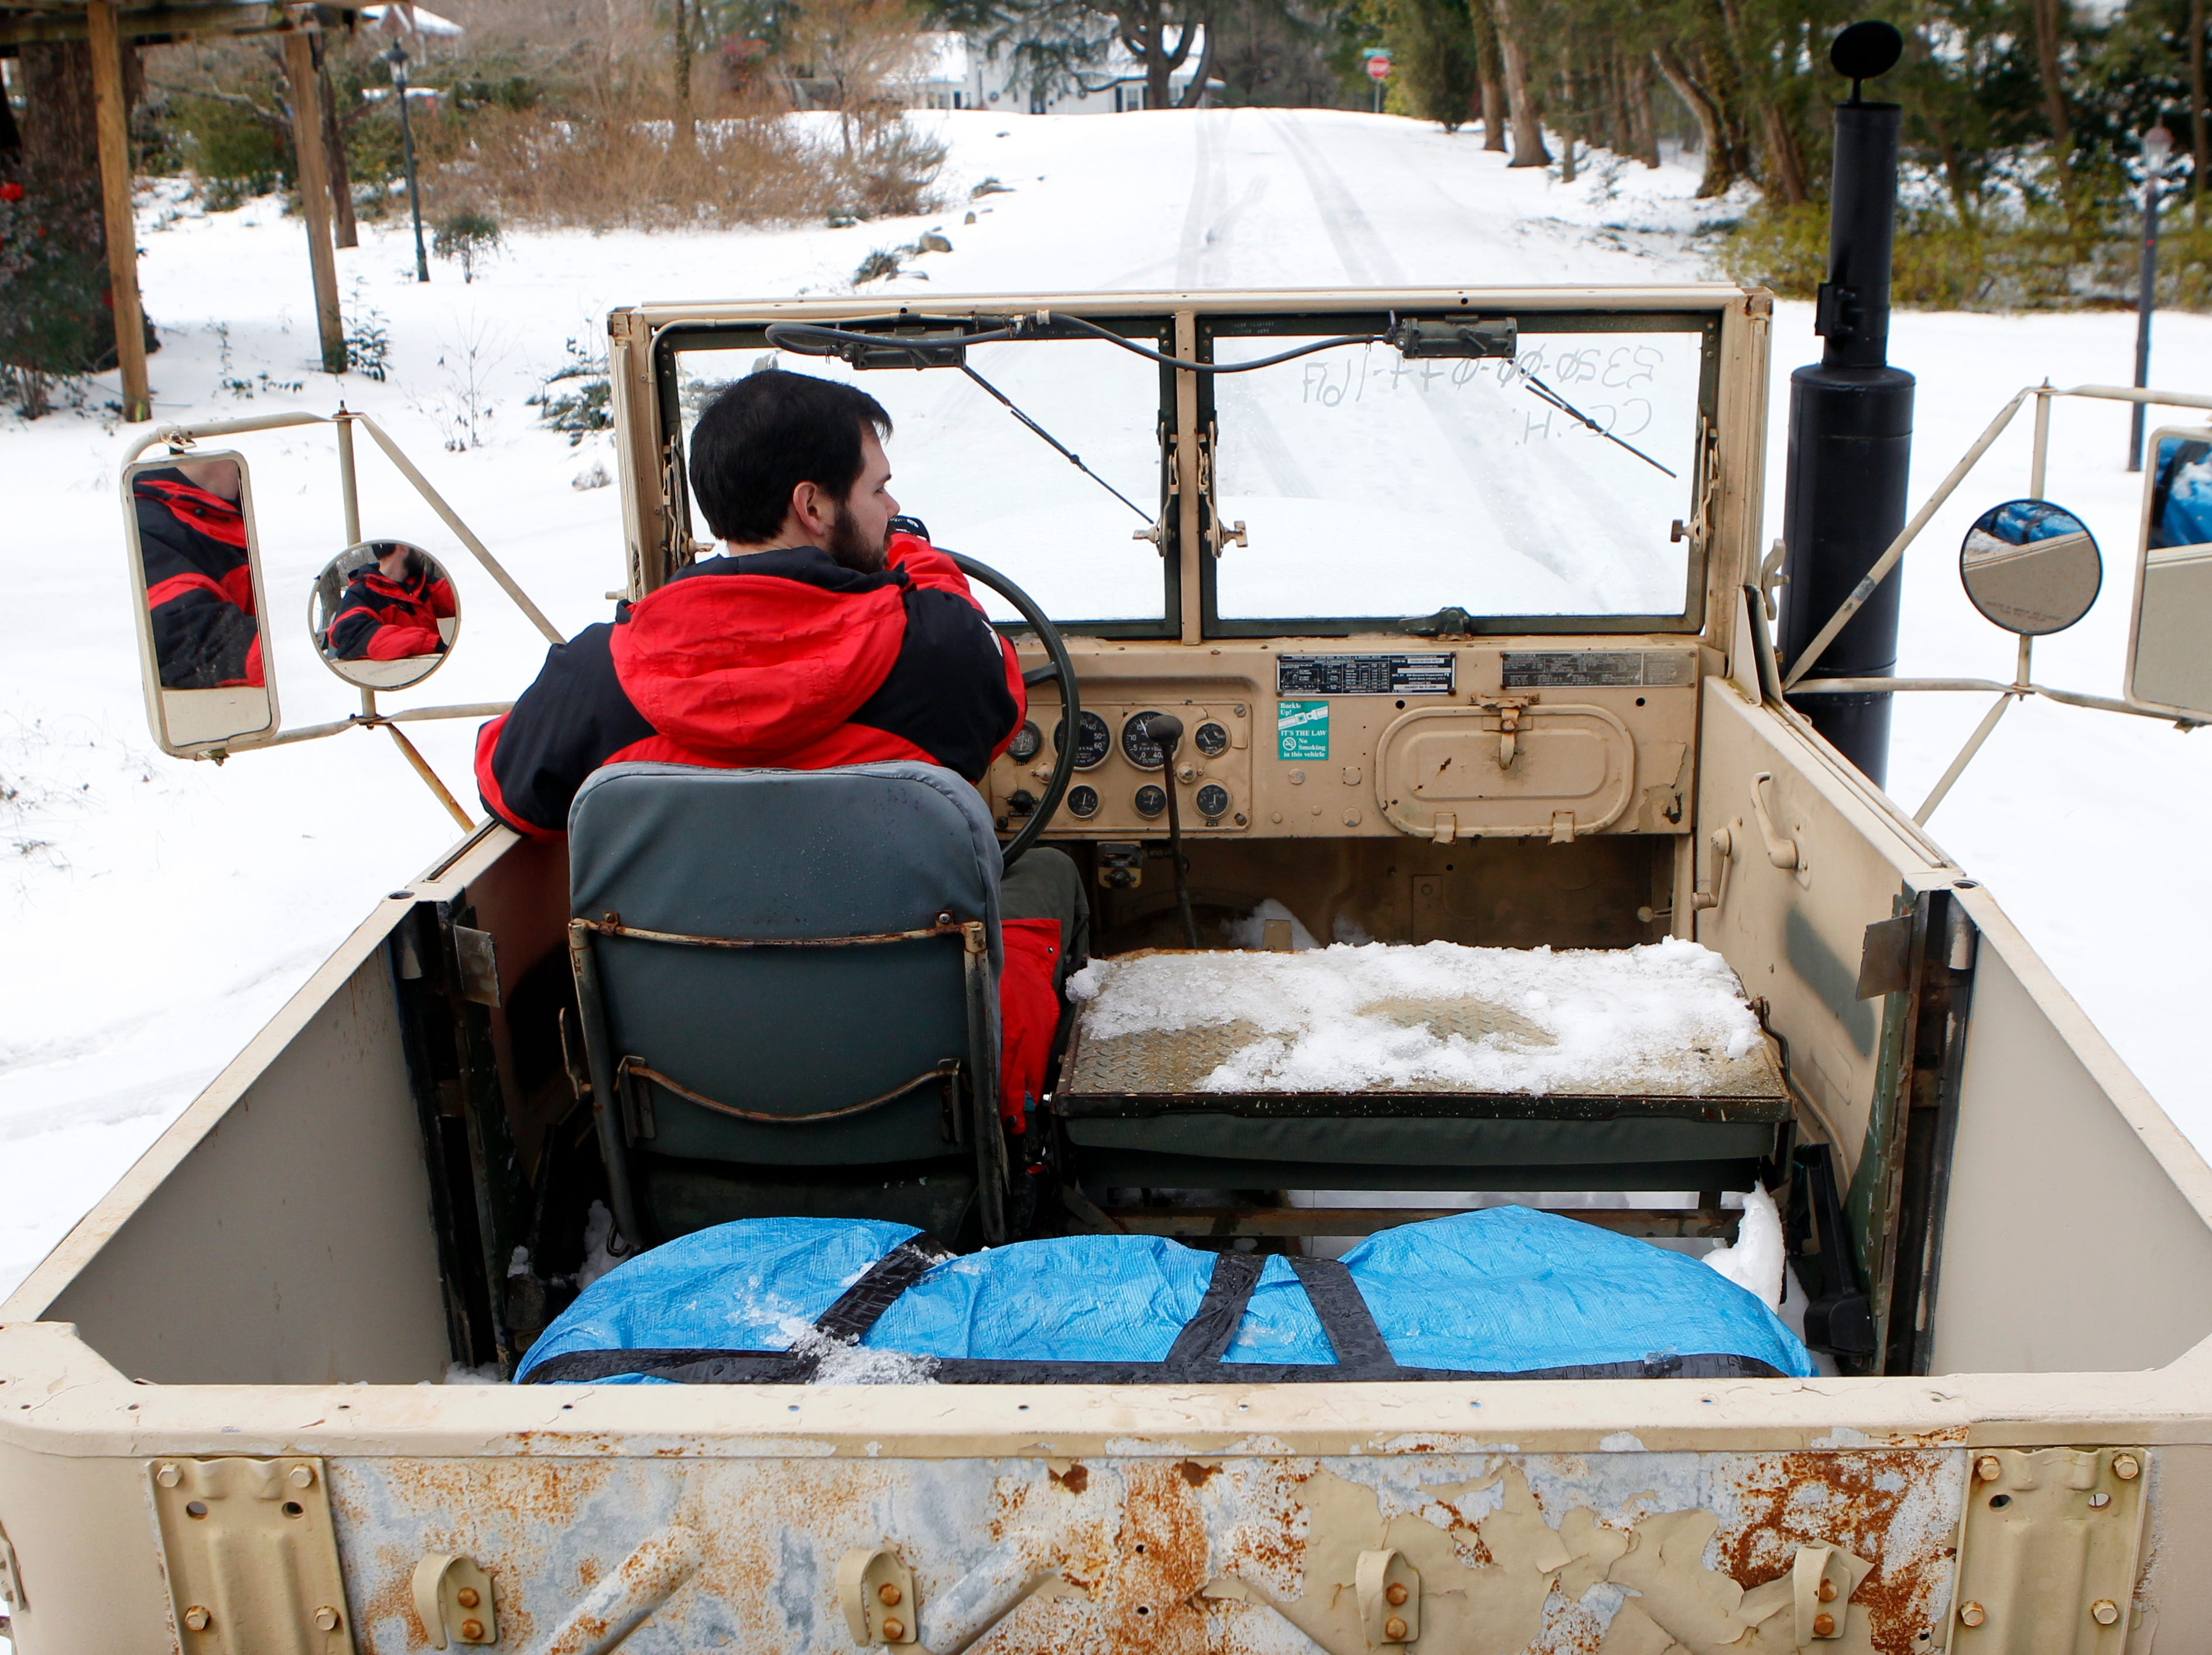 """Weston Rainey drives his 13,500-lb. 1970 M35A2 U.S. Army truck, better known as a """"Deuce and a Half"""", to break up the snow and ice on the streets of his Anderson neighborhood on Thursday February 13, 2014."""